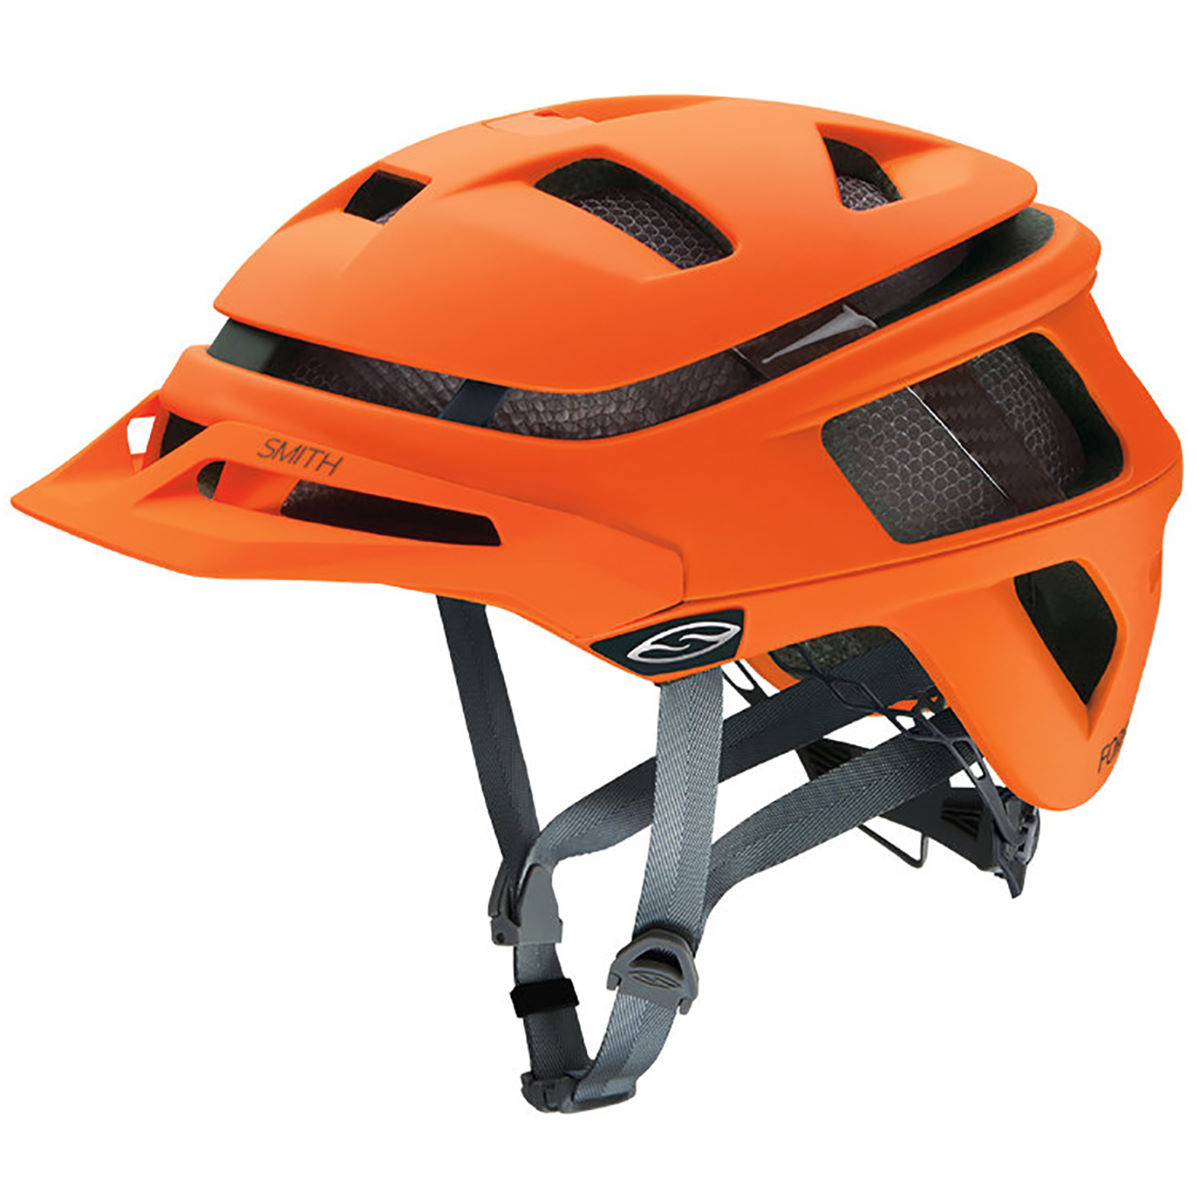 Casque Smith Forefront - S 51-55cm Neon Orange Casques VTT